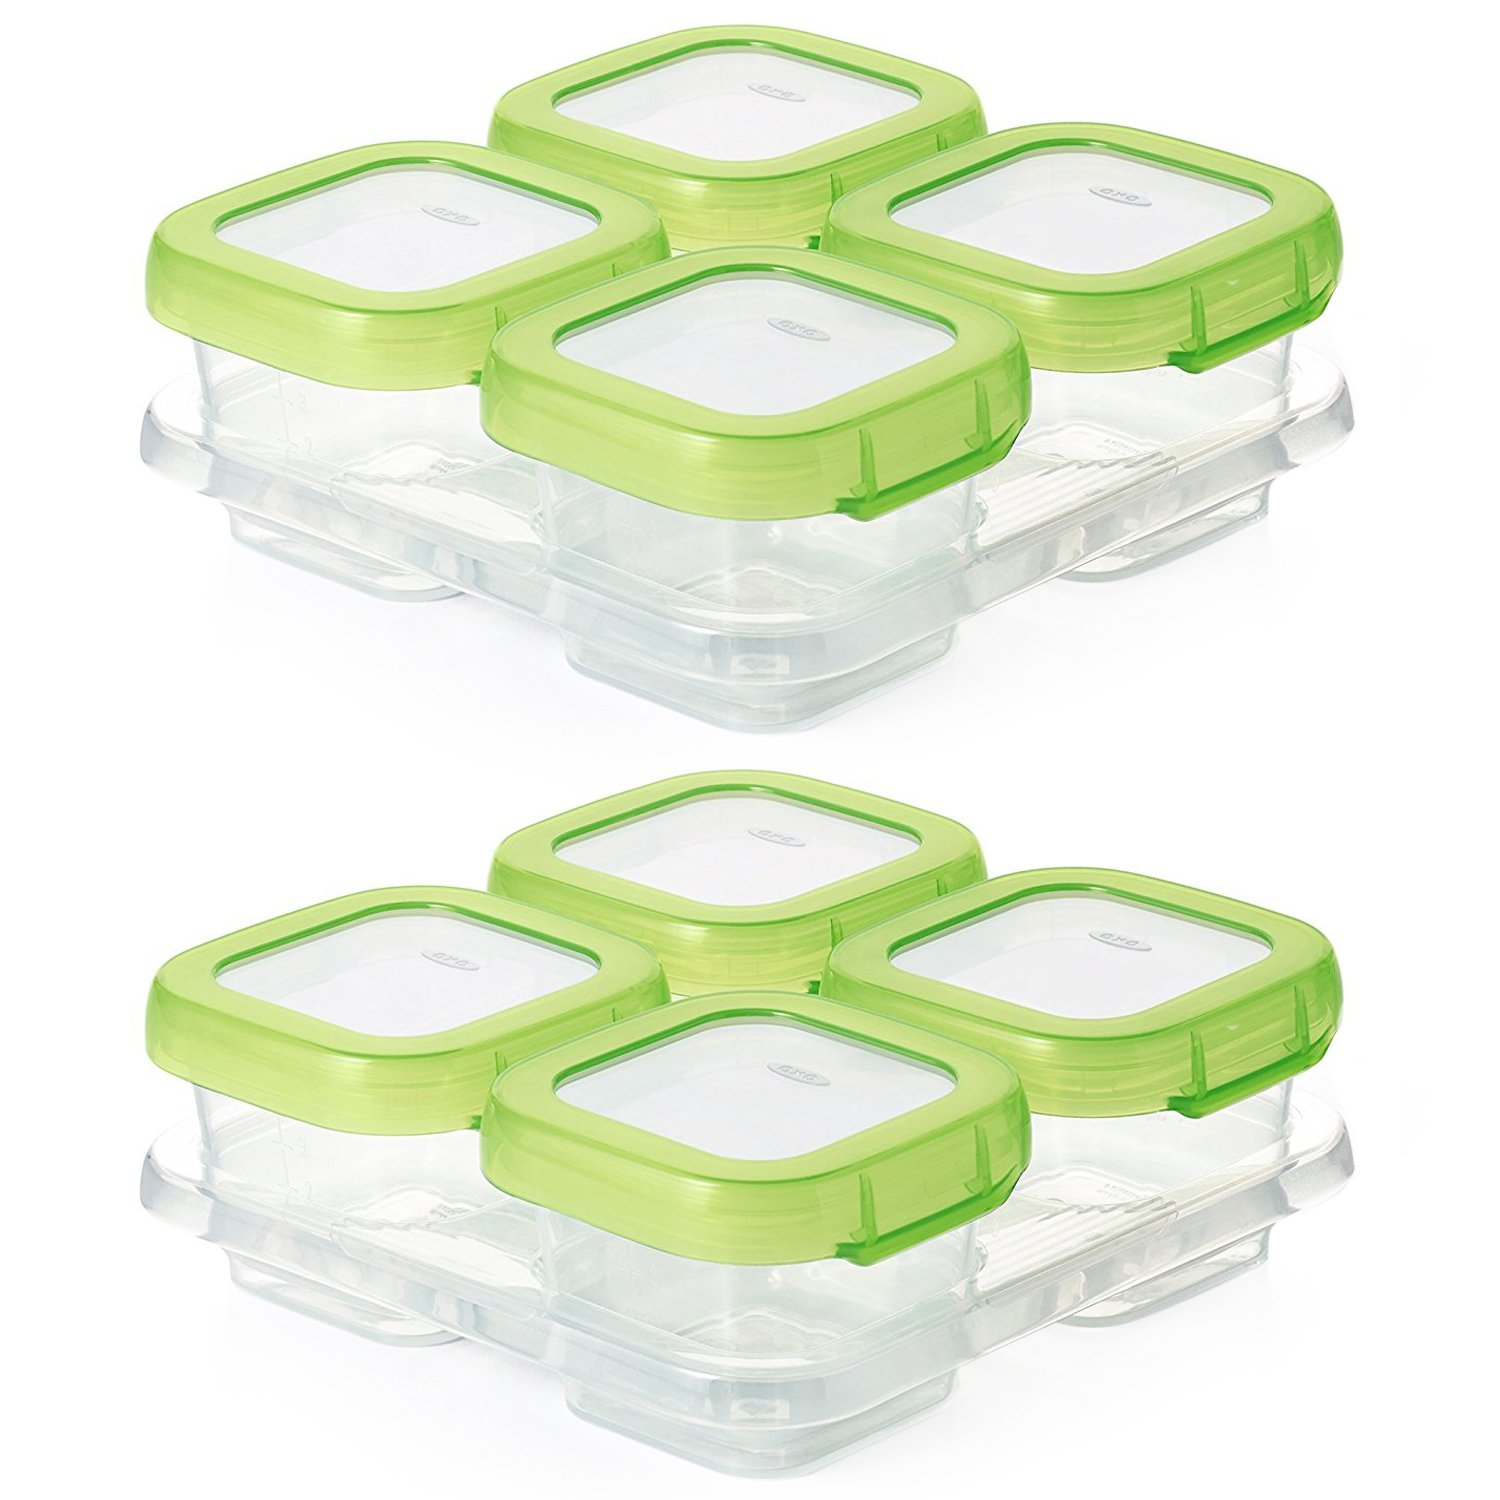 OXO Tot Baby Blocks Freezer Storage Containers 4-Ounce, Set of 8, Clear